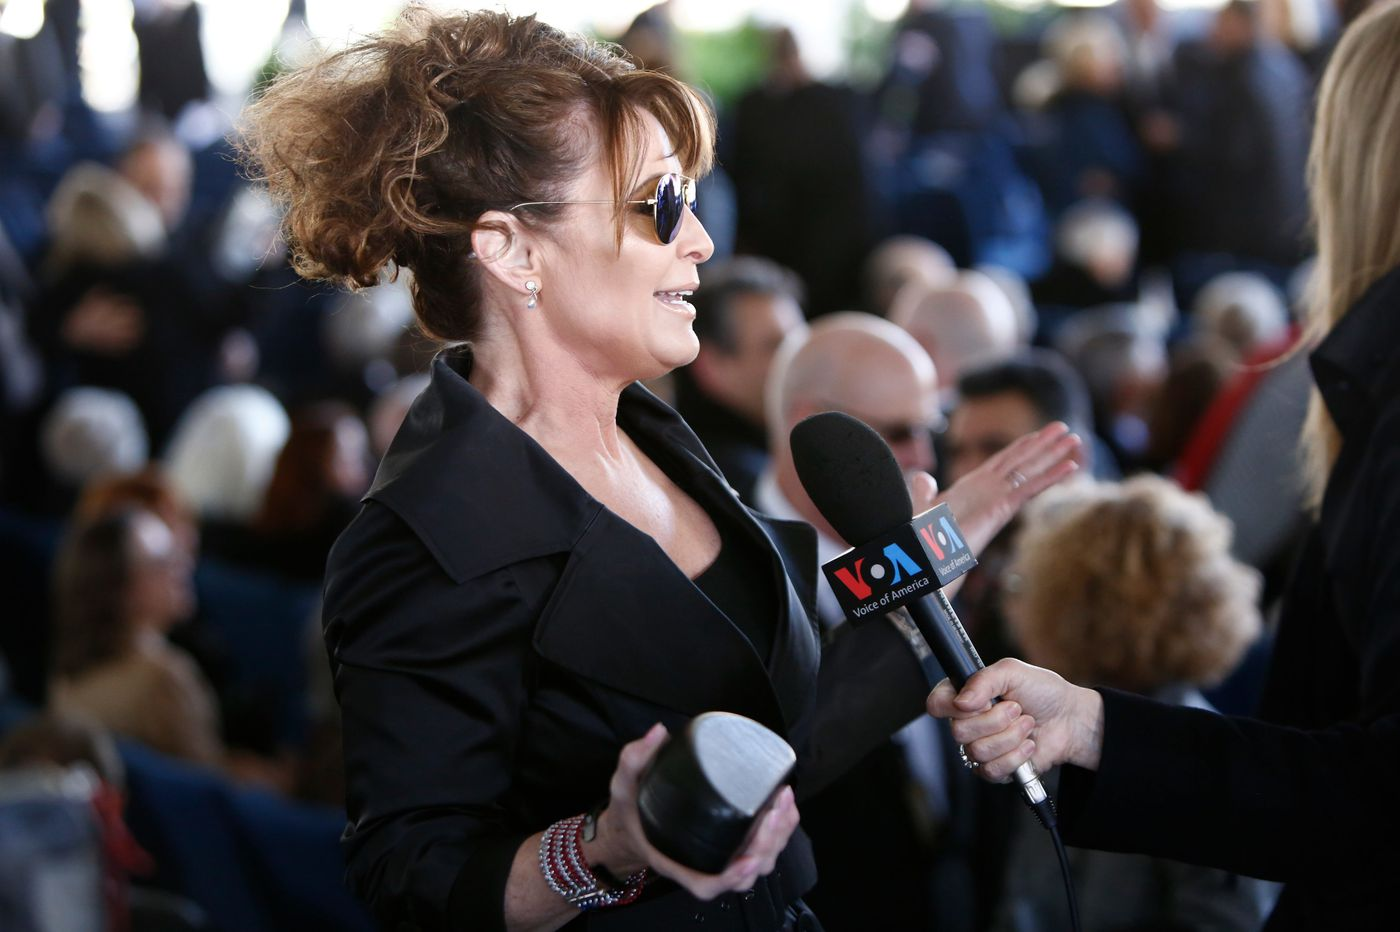 Documents appear to show Sarah Palin's husband wants divorce